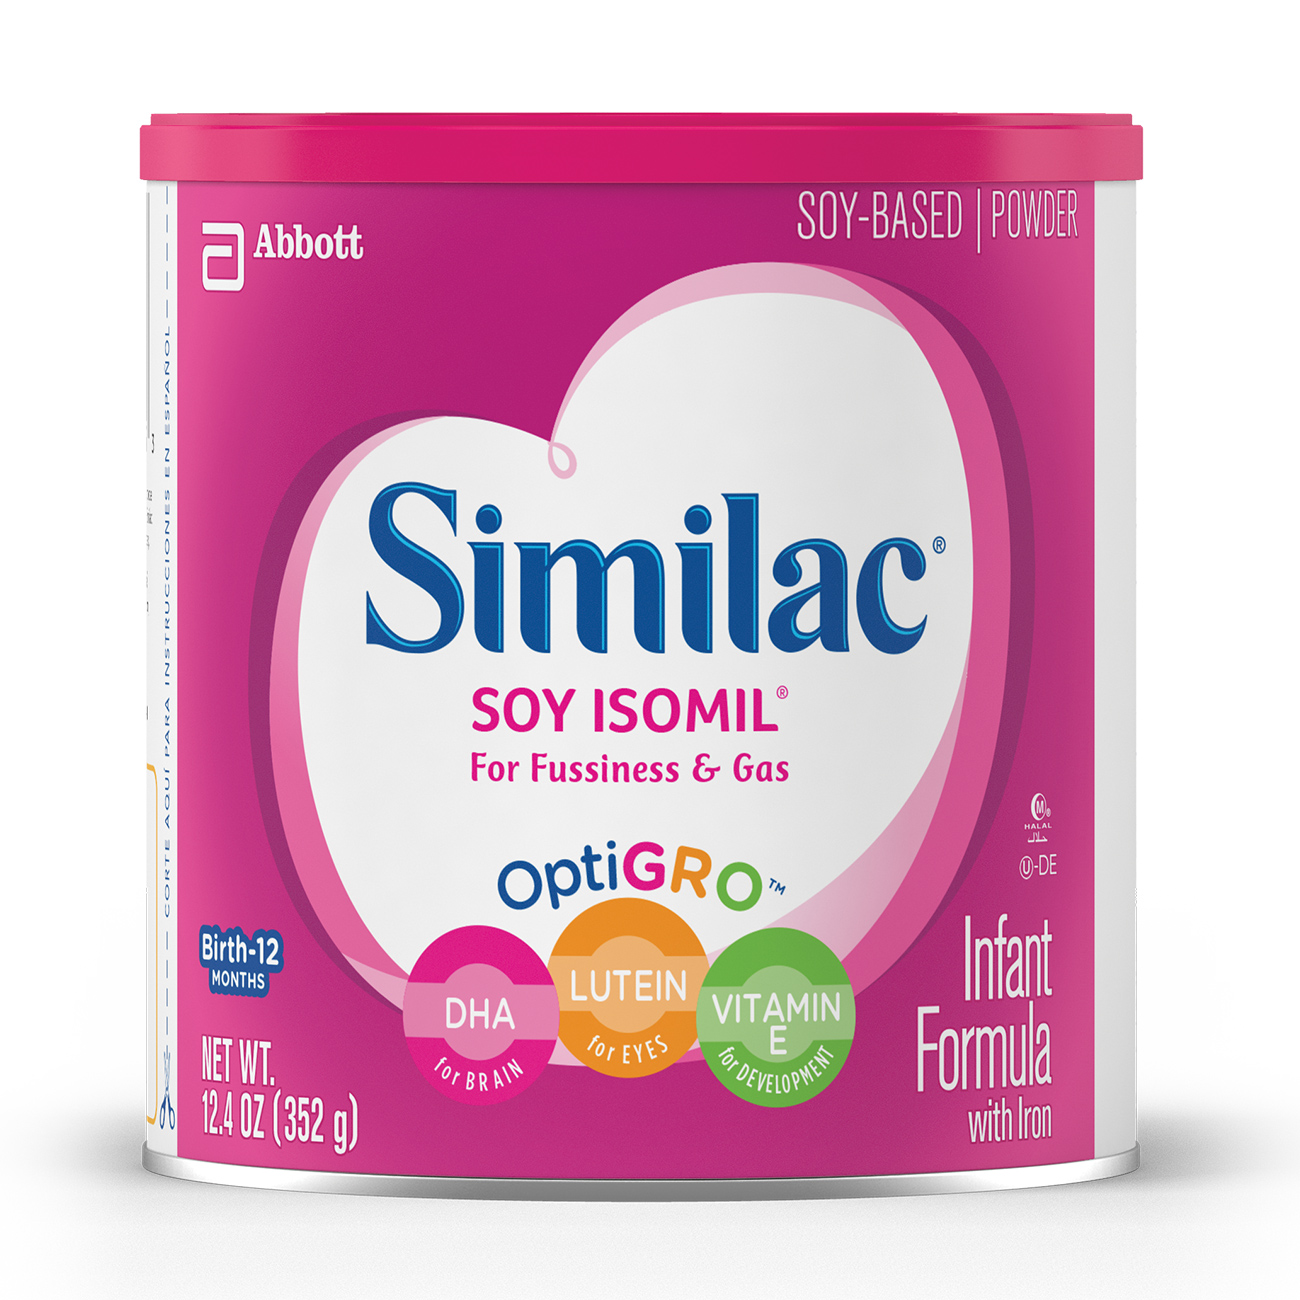 Similac Soy Isomil Baby Formula For Fussiness and Gas, 6 Count Powder, 12.4-oz Can (Walmart)